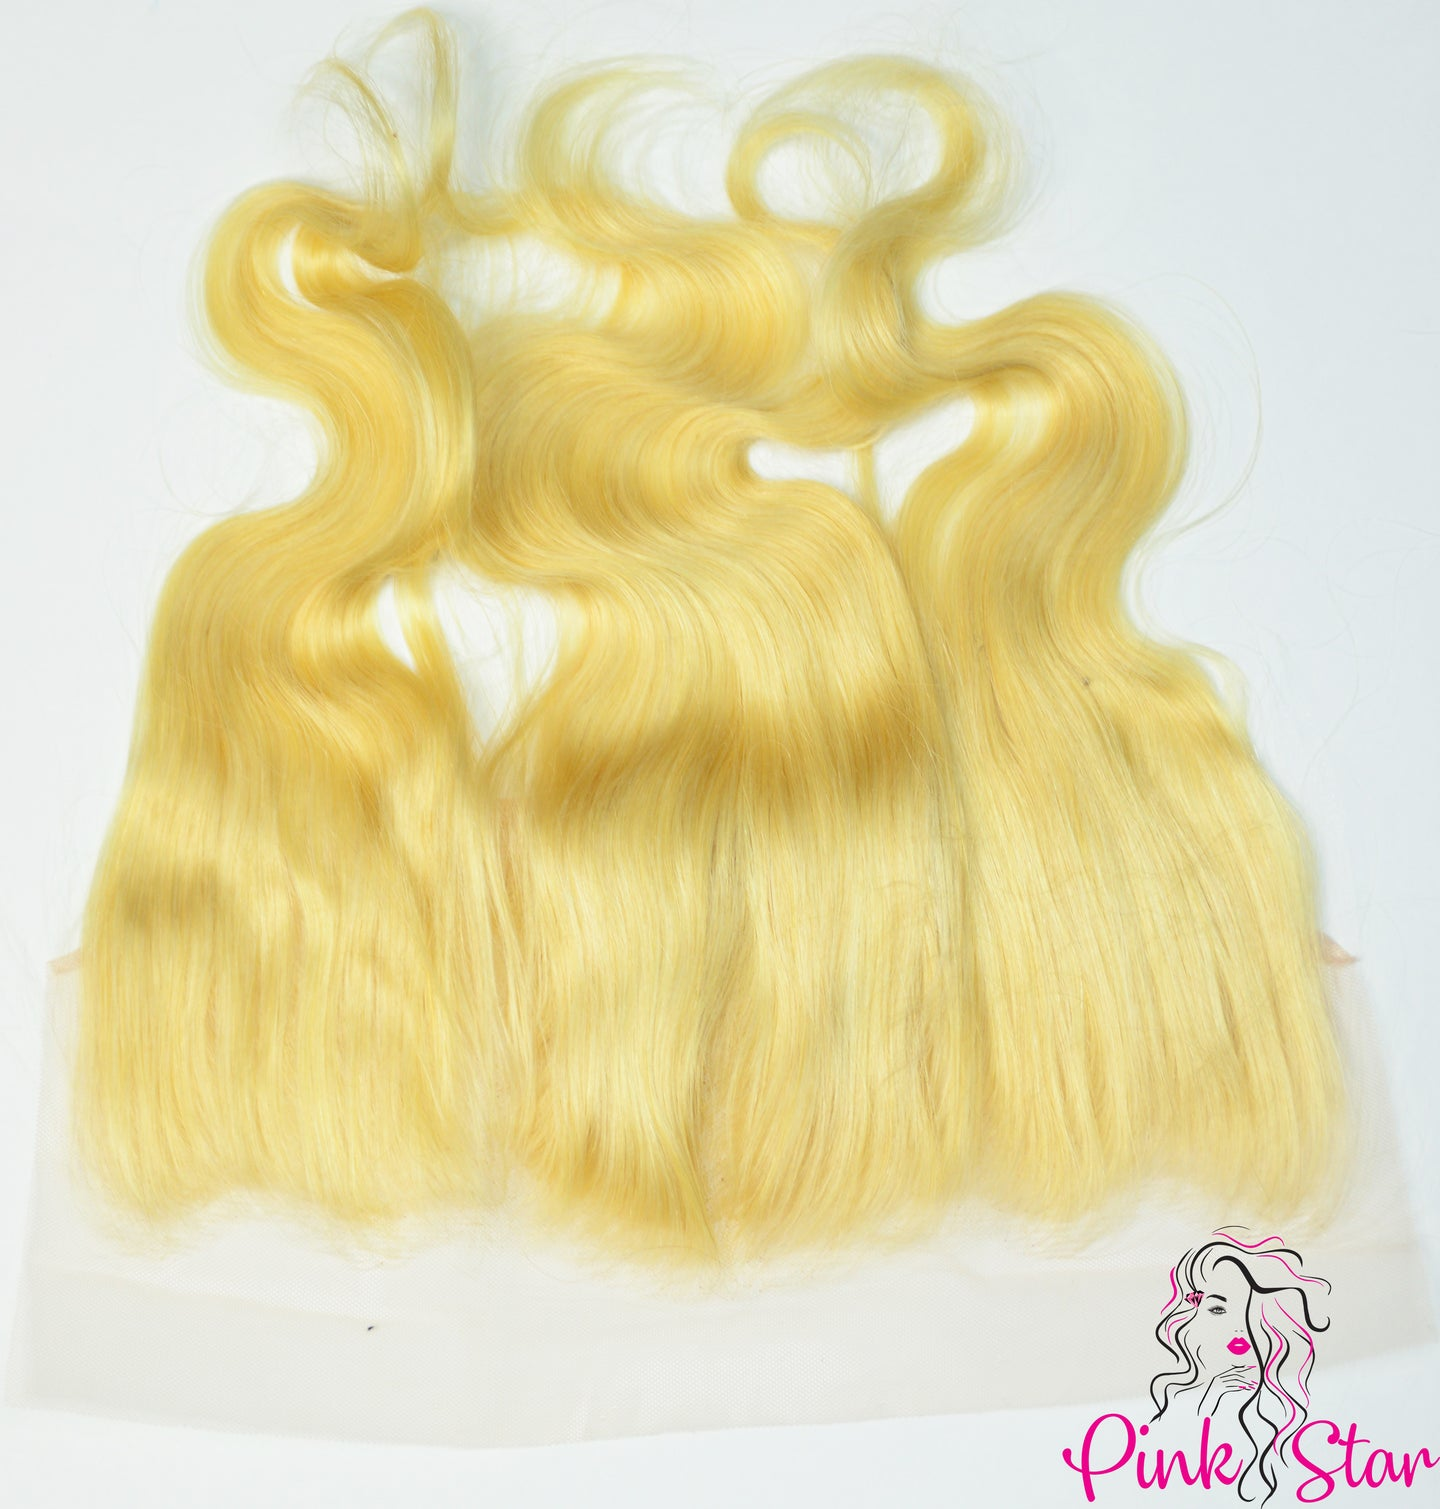 13 x 4 Frontals - Body Wave Blonde Hair - The Pink Star Company